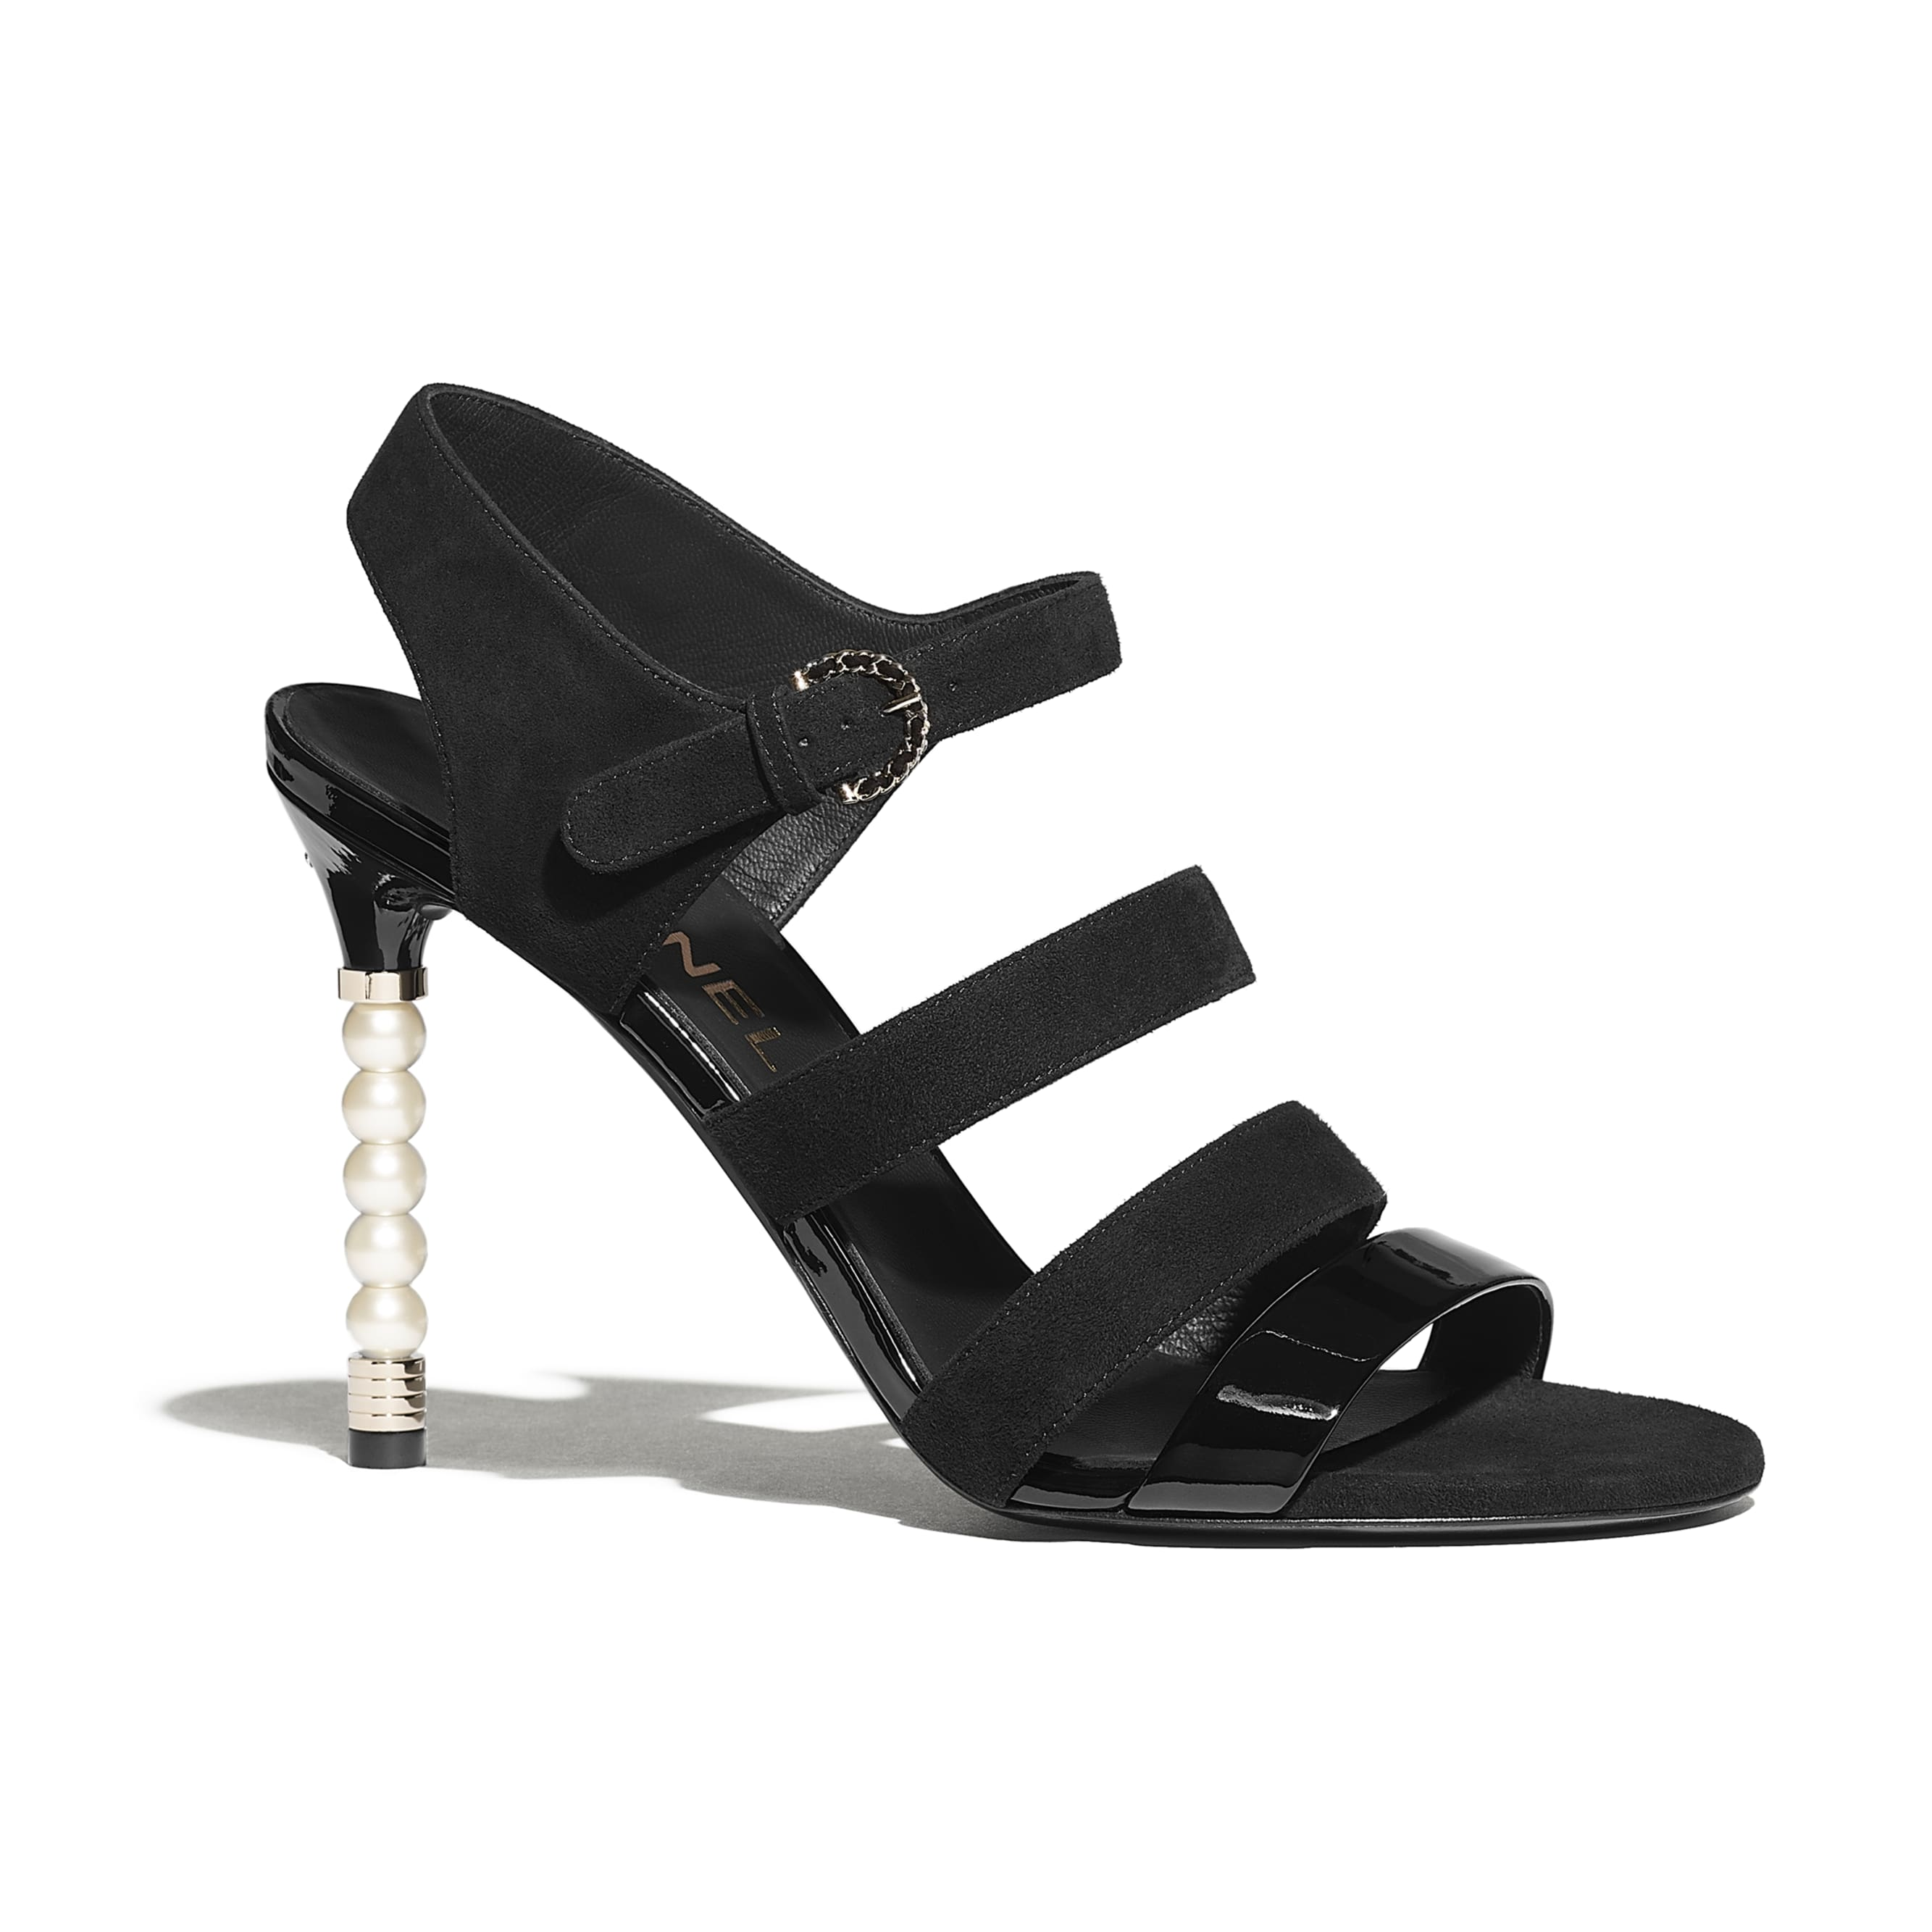 Sandals - Black - Suede Goatskin & Patent Calfskin - CHANEL - Default view - see standard sized version